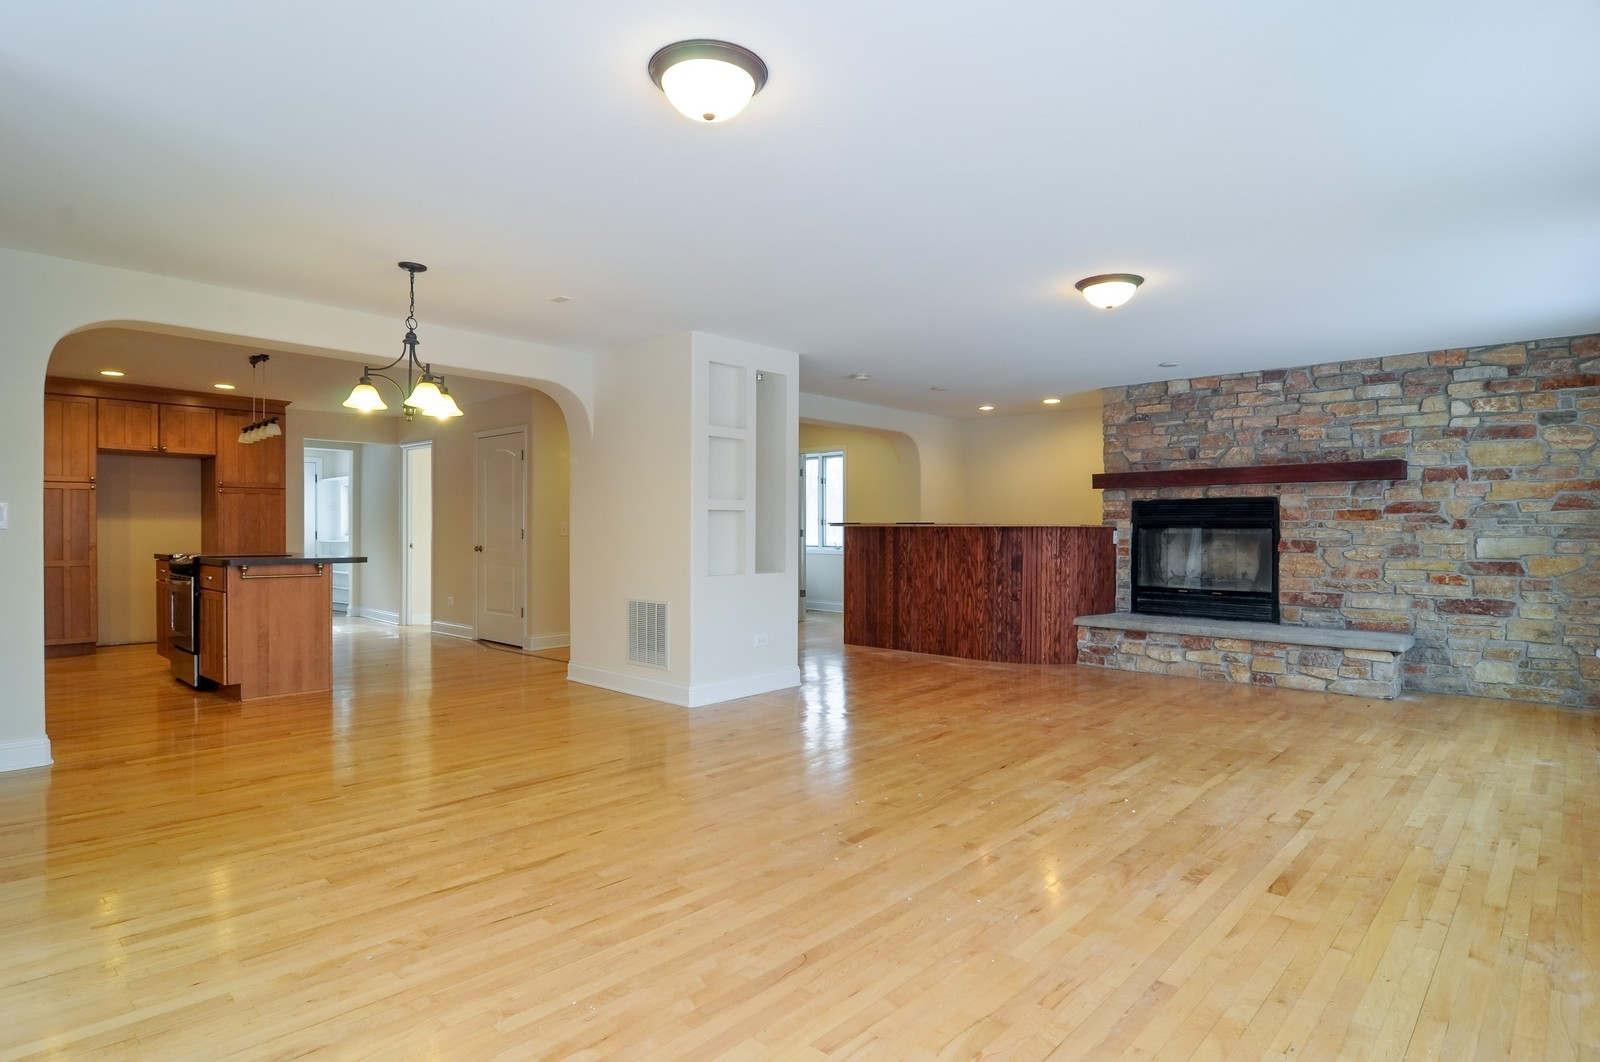 Real Estate Photography - 109 N River Rd, Fox River Grove, IL, 60021 - Living Room / Dining Room